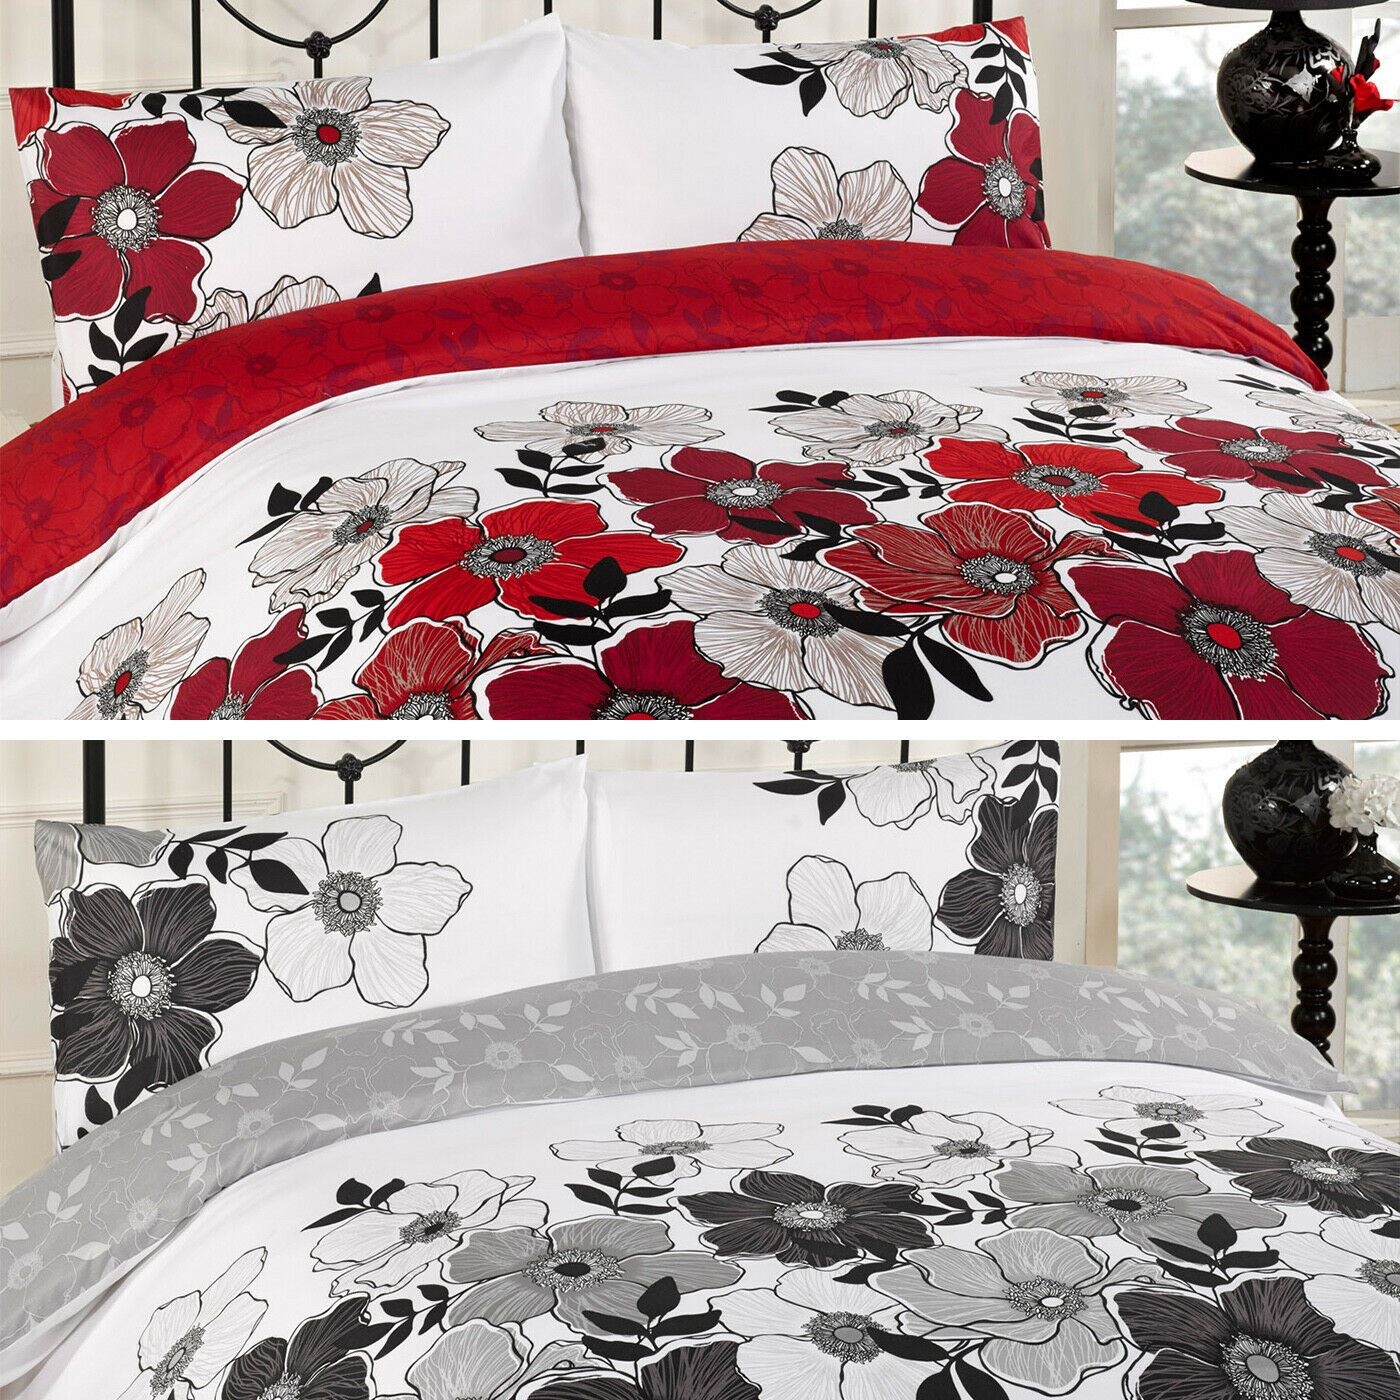 details about duvet cover with pillow case bed set pollyanna red black grey single double king